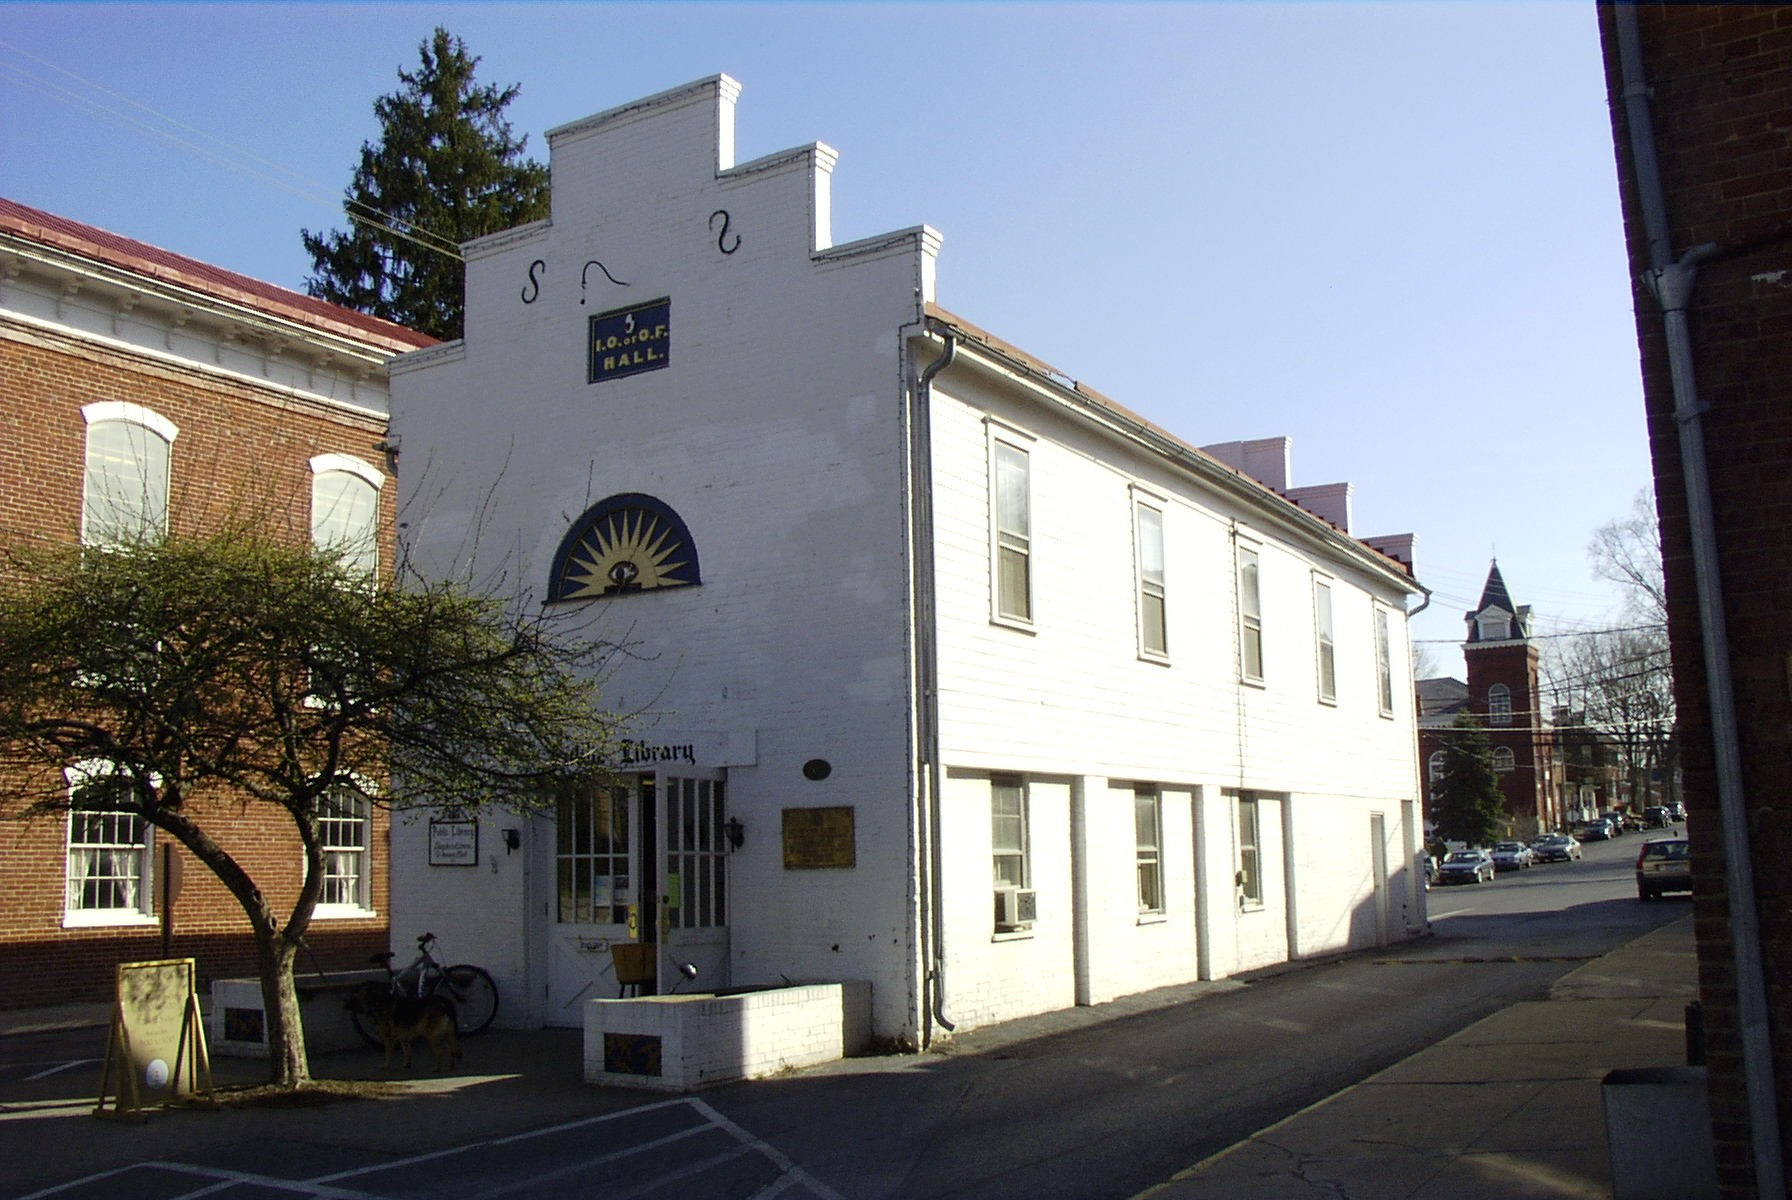 Constructed as a public market in 1800, this historic building has served as the local public library since the 1920s.